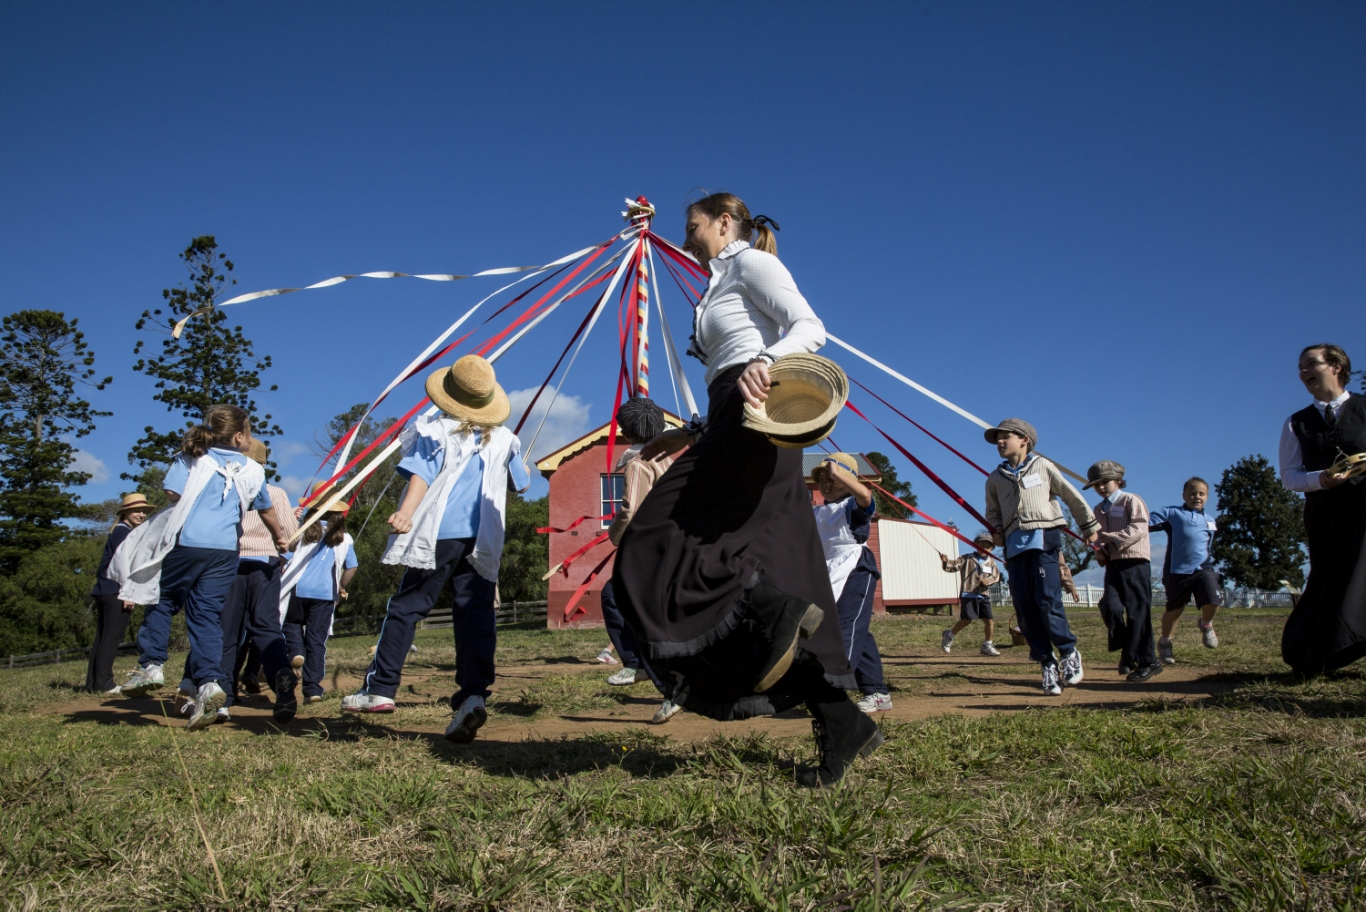 Adults and children dressed in period costume dancing around maypole holding onto ribbons in outdoor setting with schoolhouse in background.